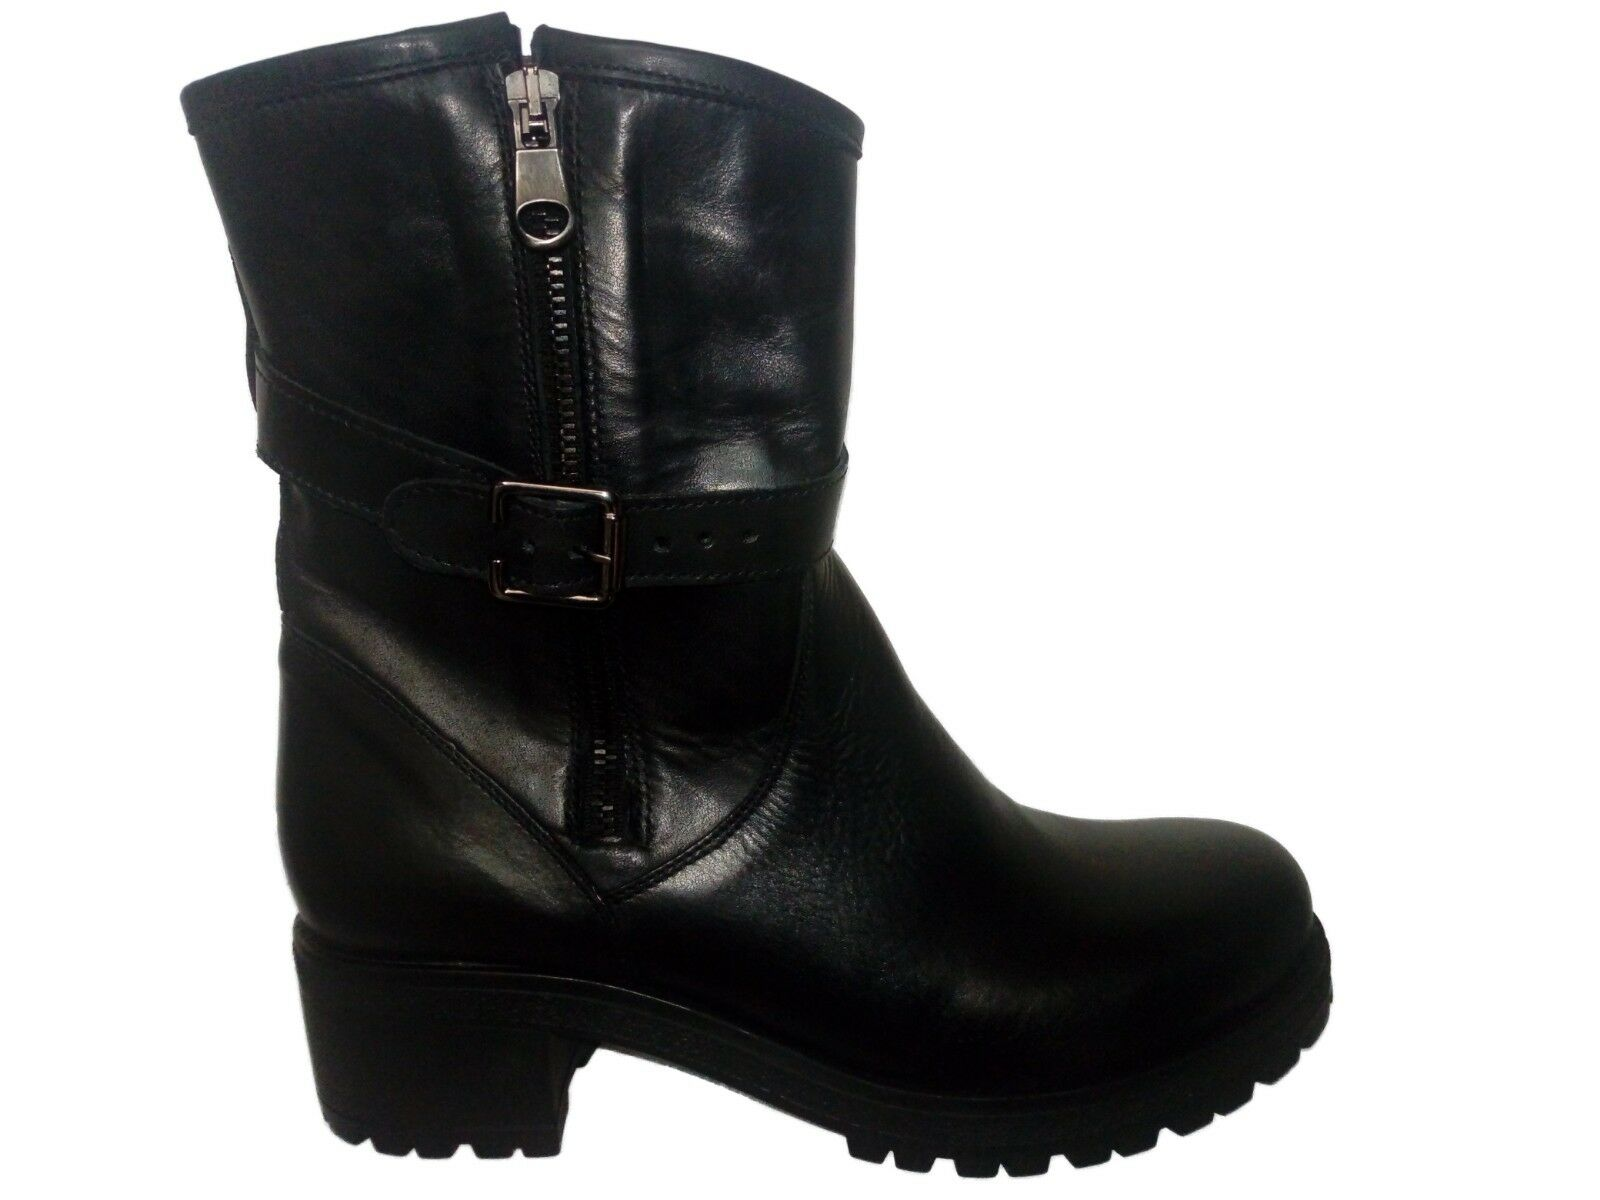 botas INVERNALI mujer ANNALOKA MADE IN IN IN ITALY in PELLE di VITELLO negro tg 36  calidad auténtica